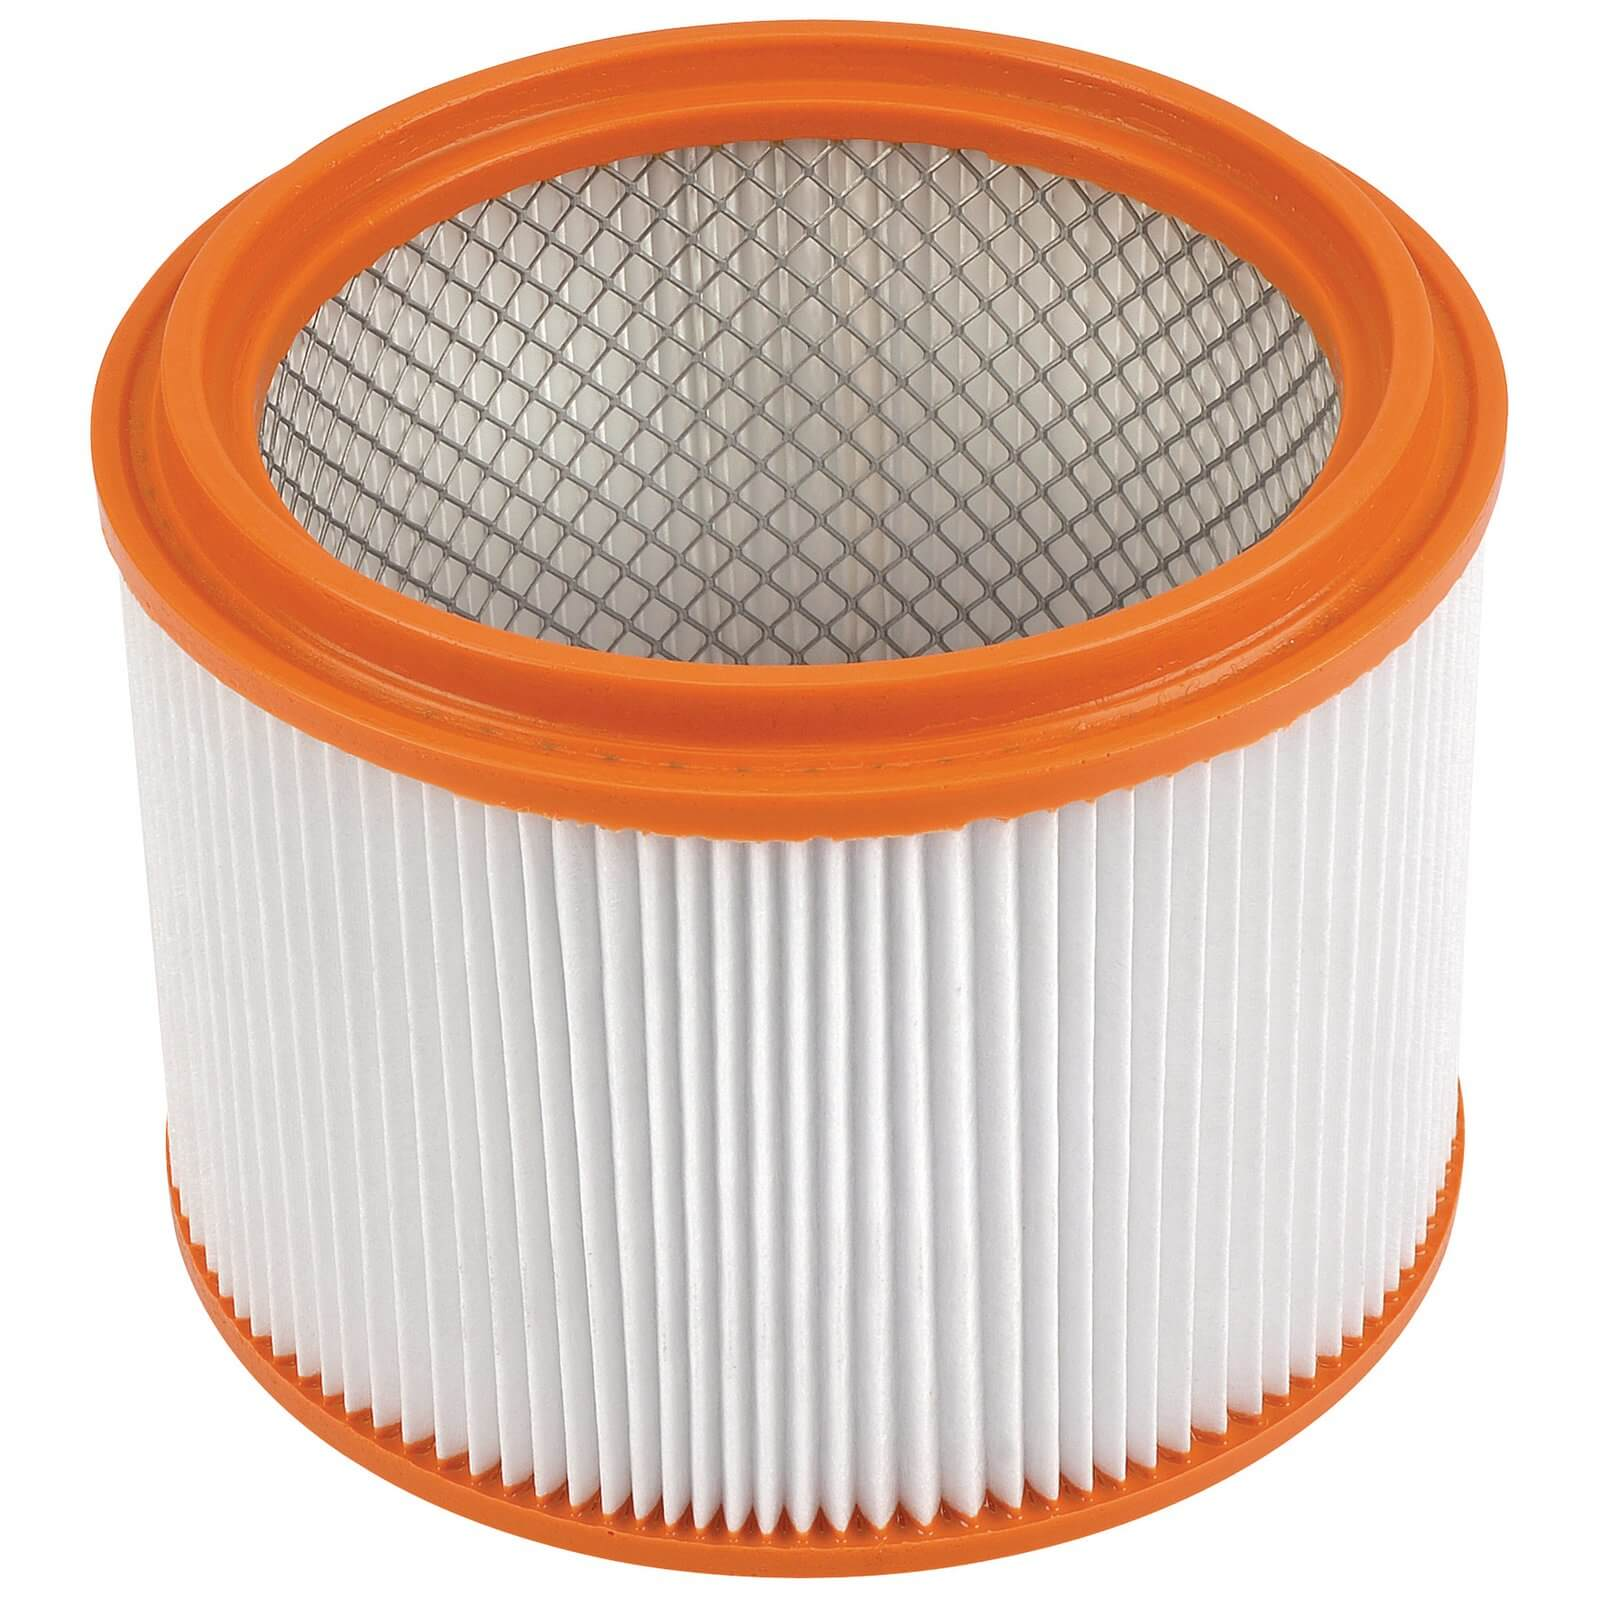 Image of Draper HEPA Cartridge Filter for SWD1100A